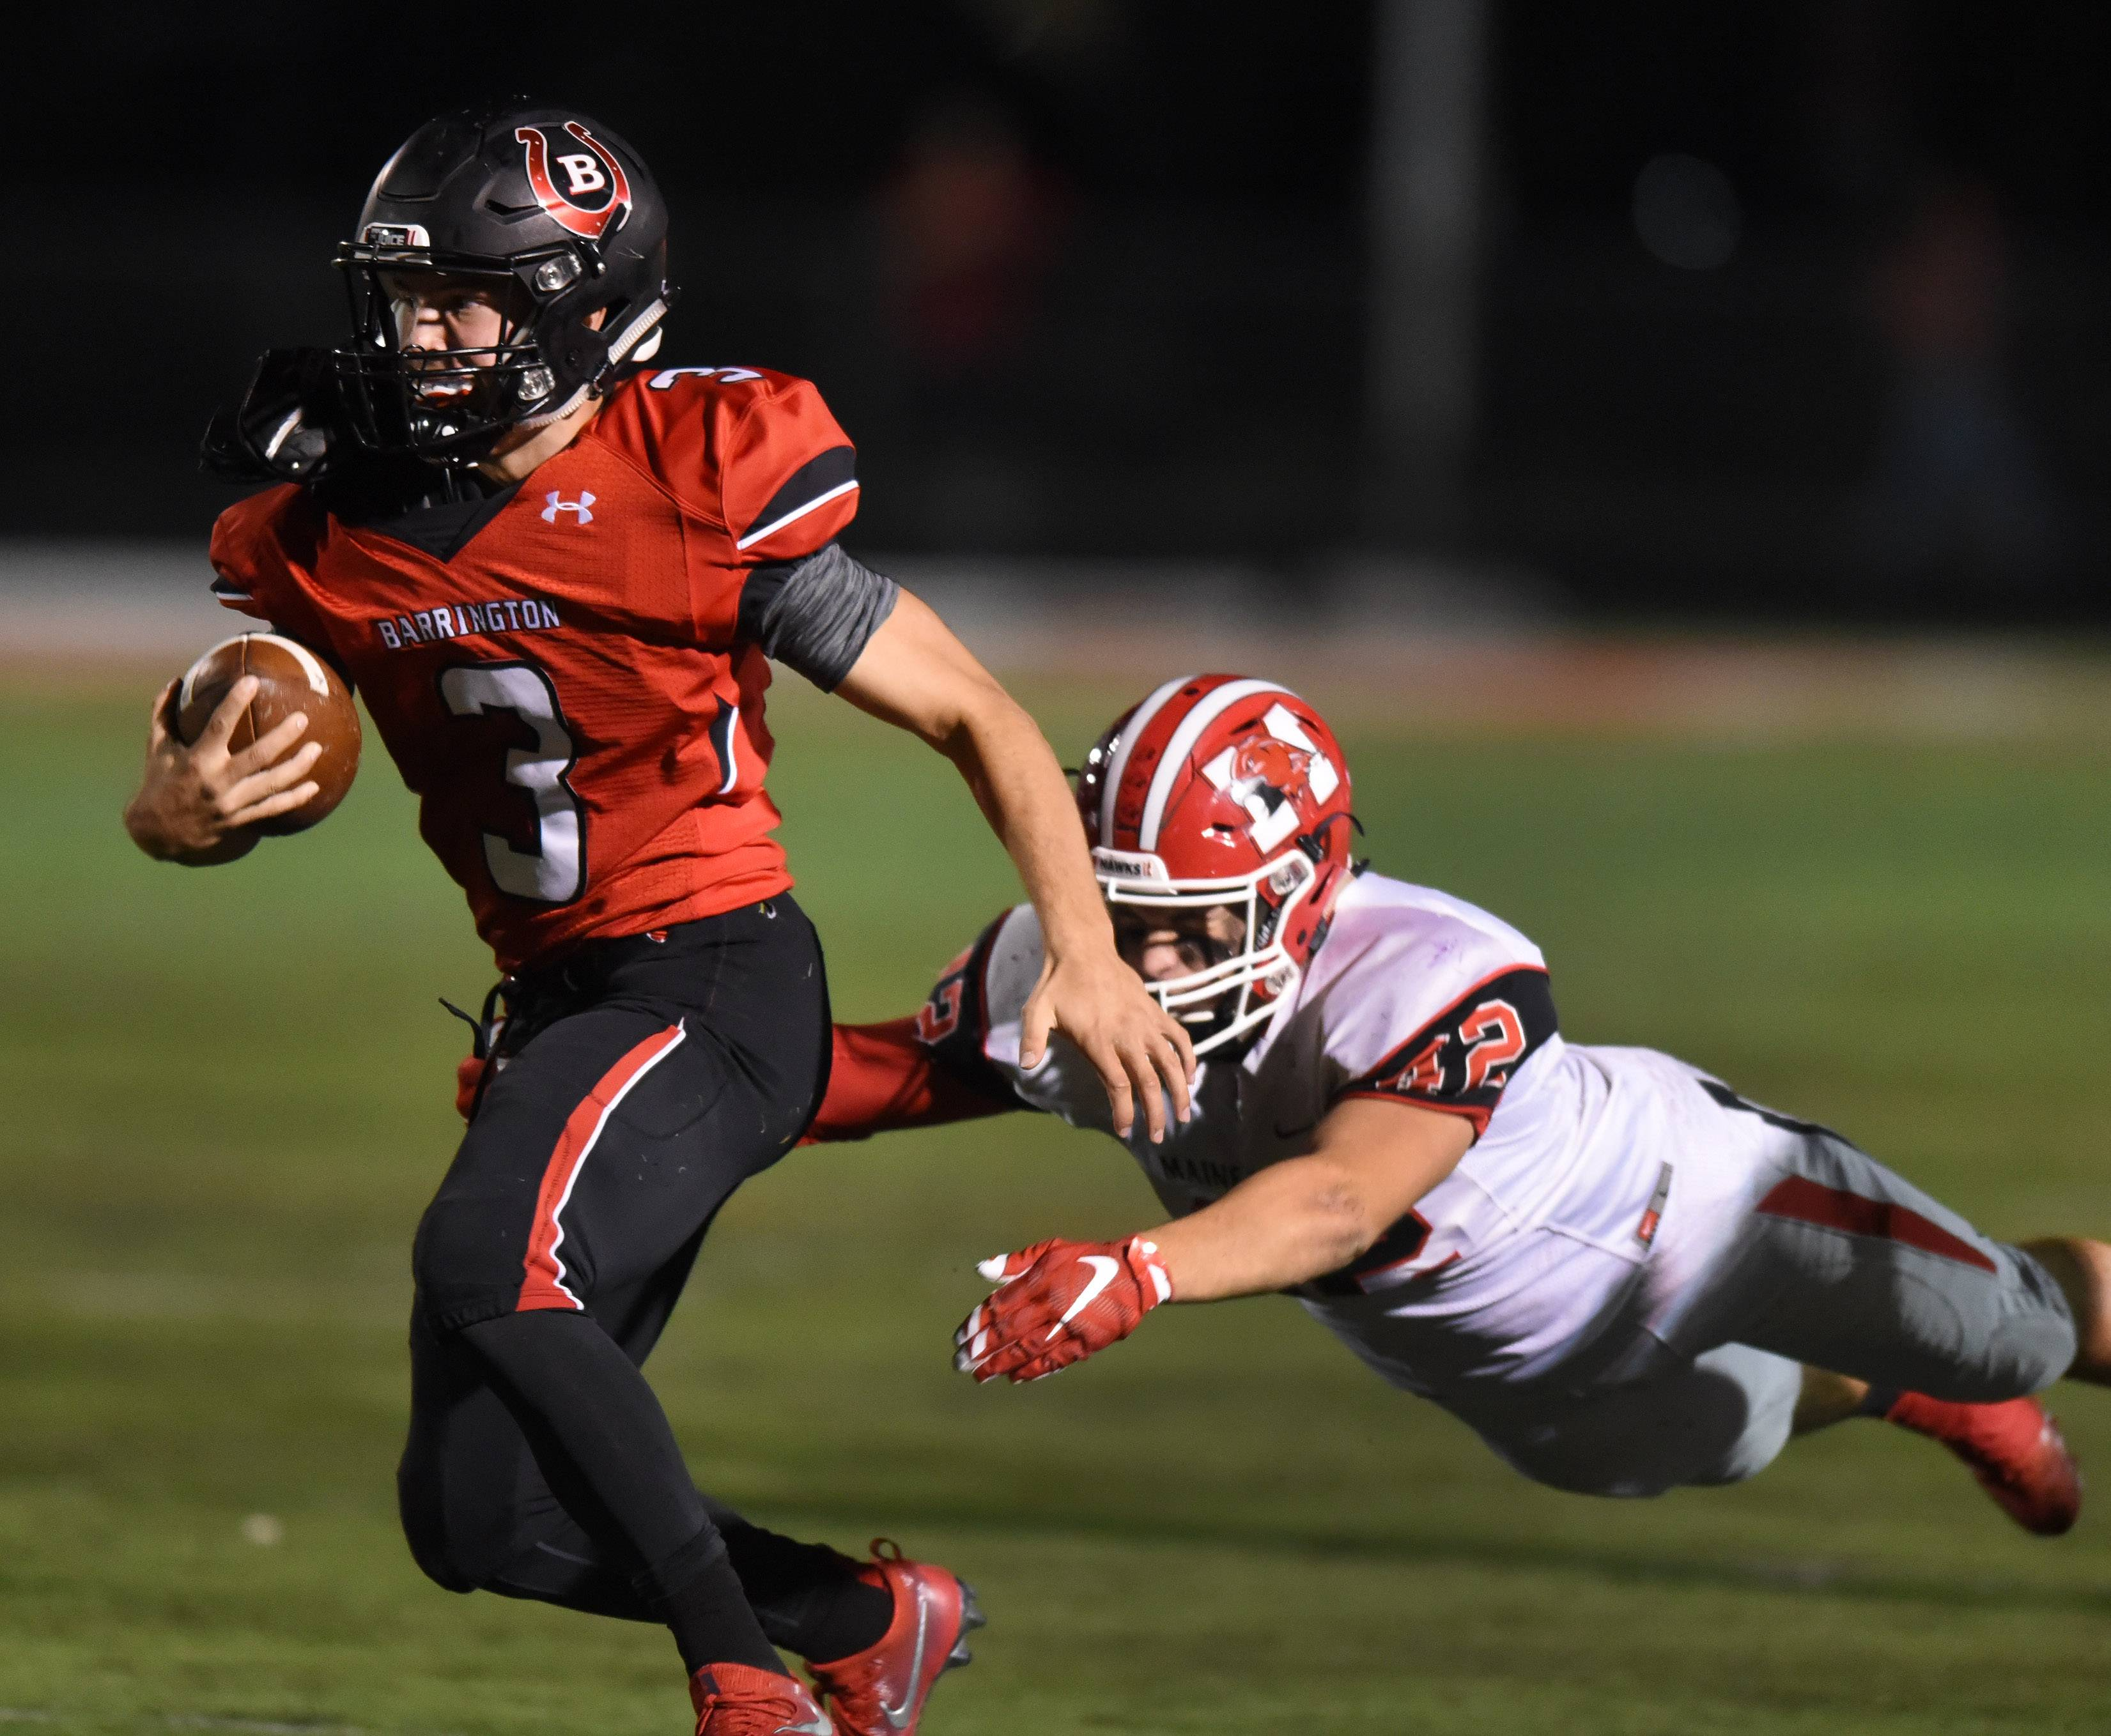 Barrington quarterback Ray Niro carries the ball as Maine South's Michael Pusateri tries to make a tackle during Friday's football game at Barrington.